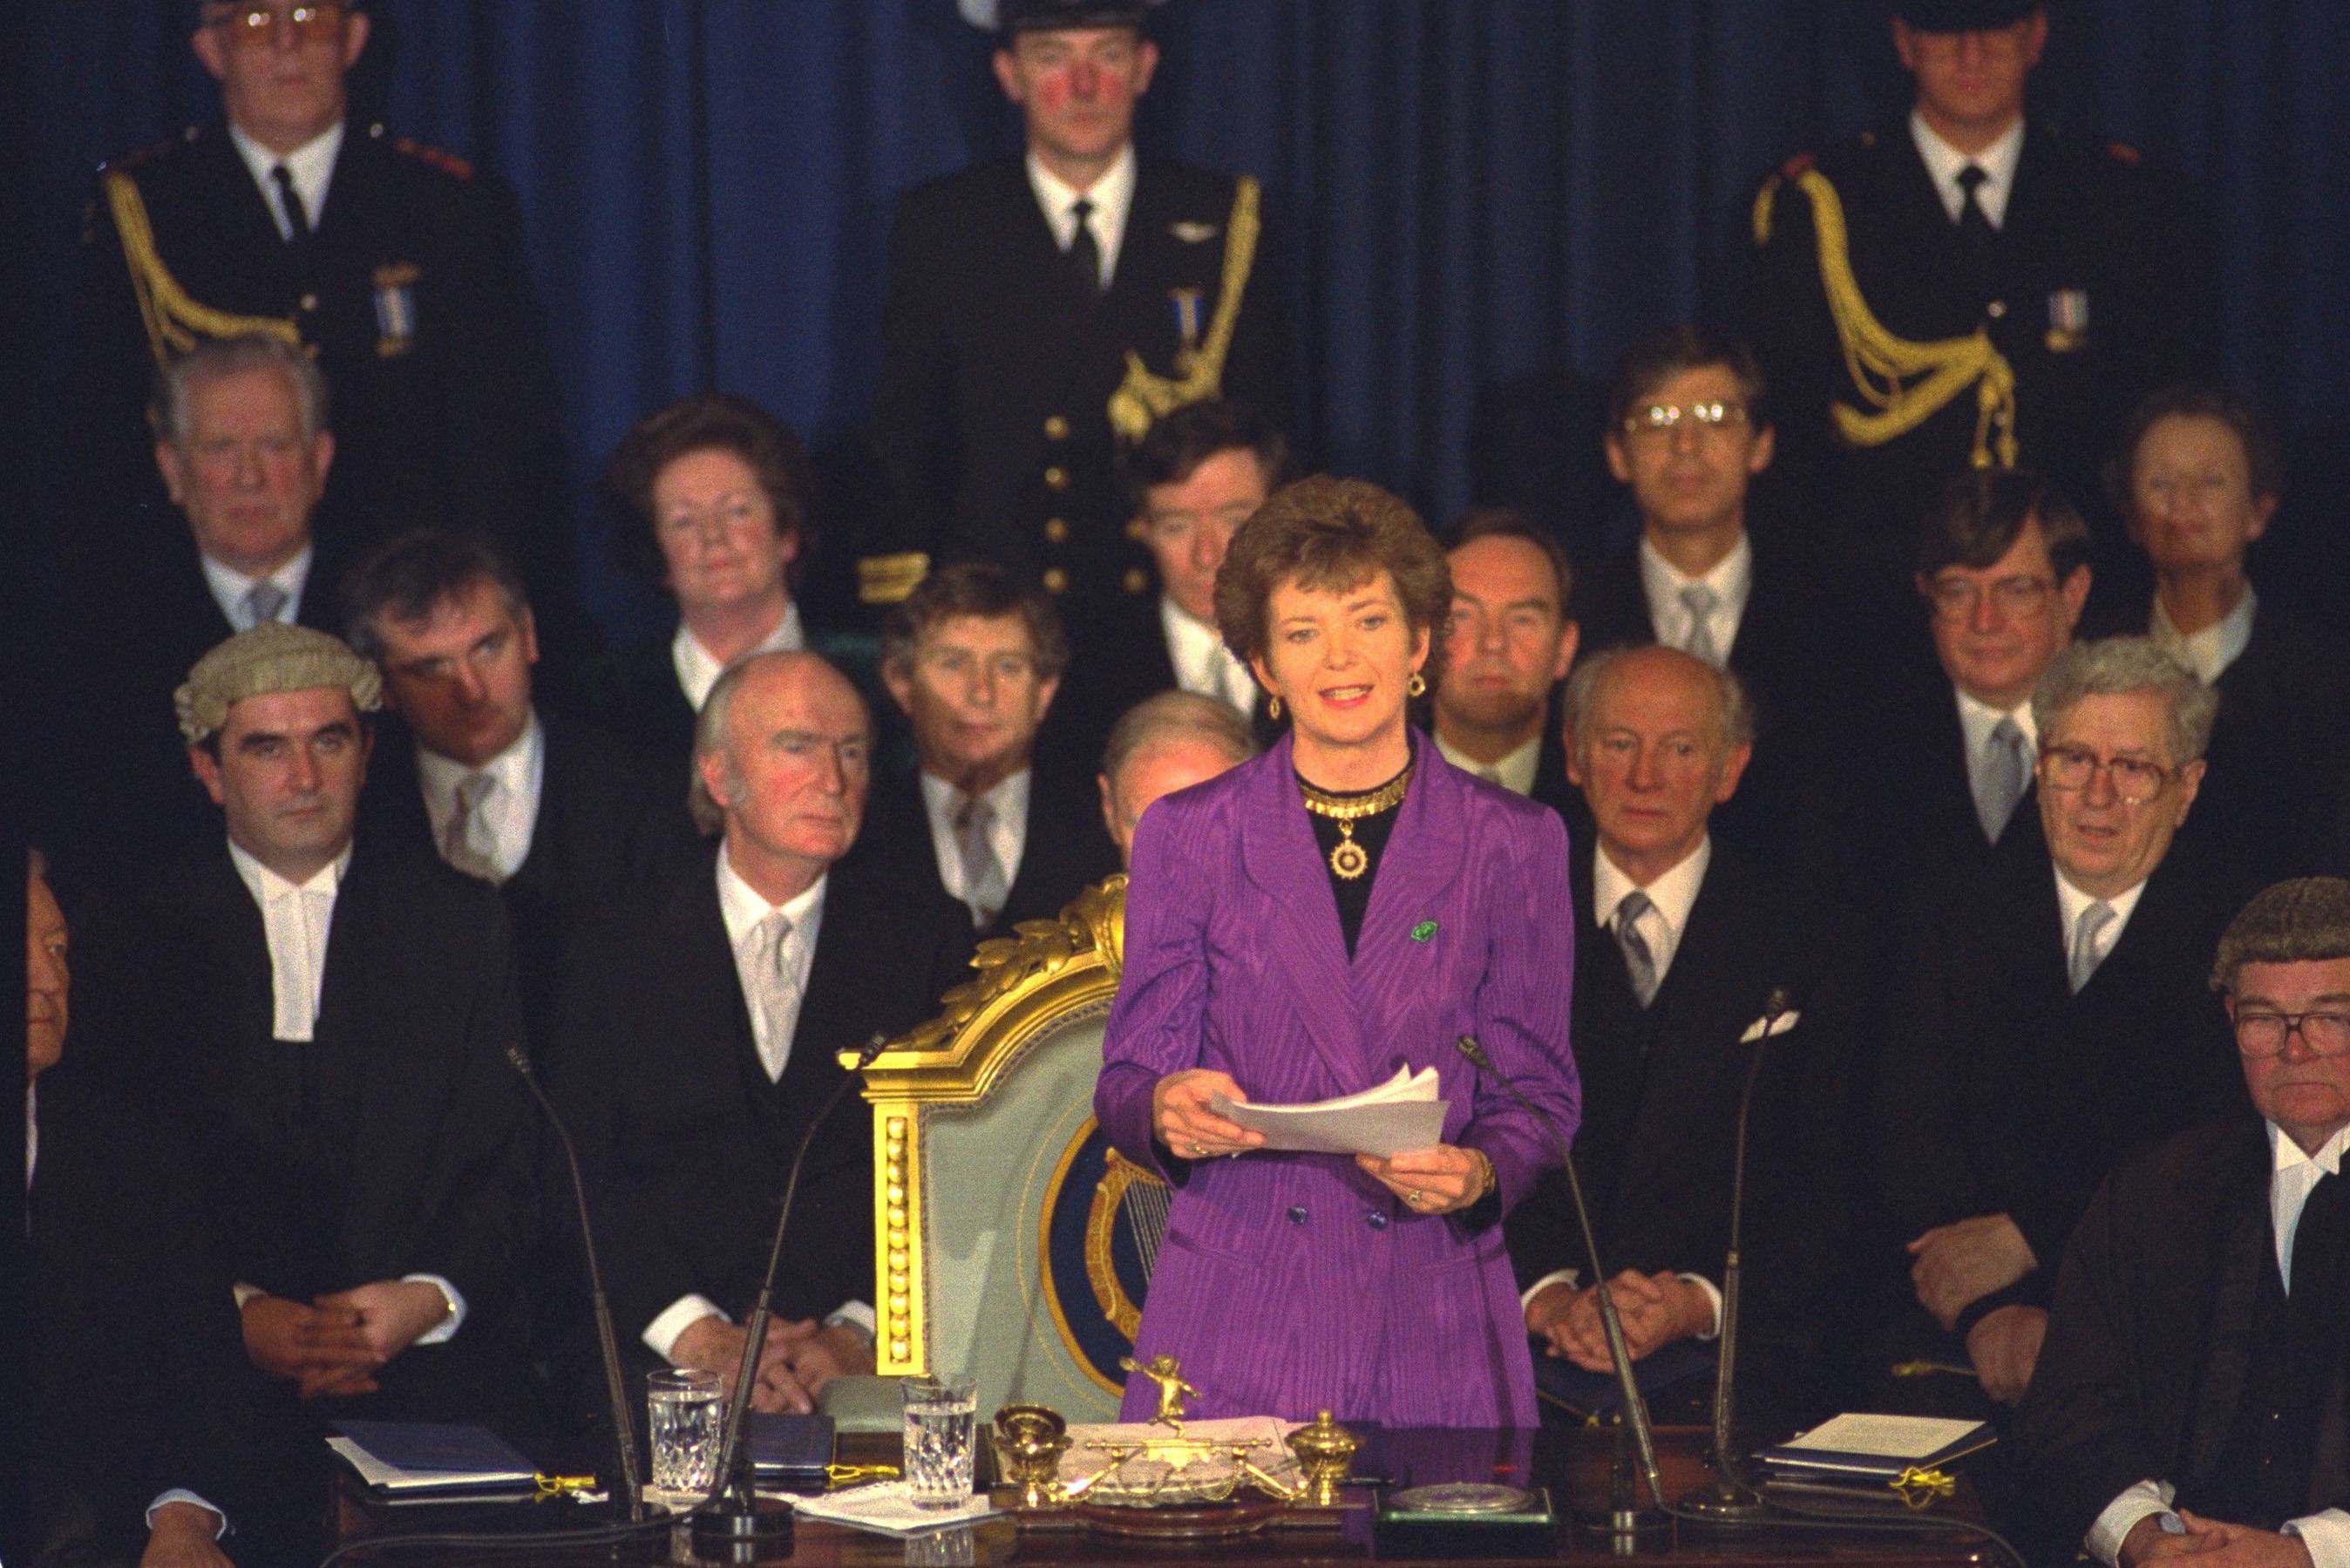 Mary Robinson during her acceptance speech in the 1990 ceremony